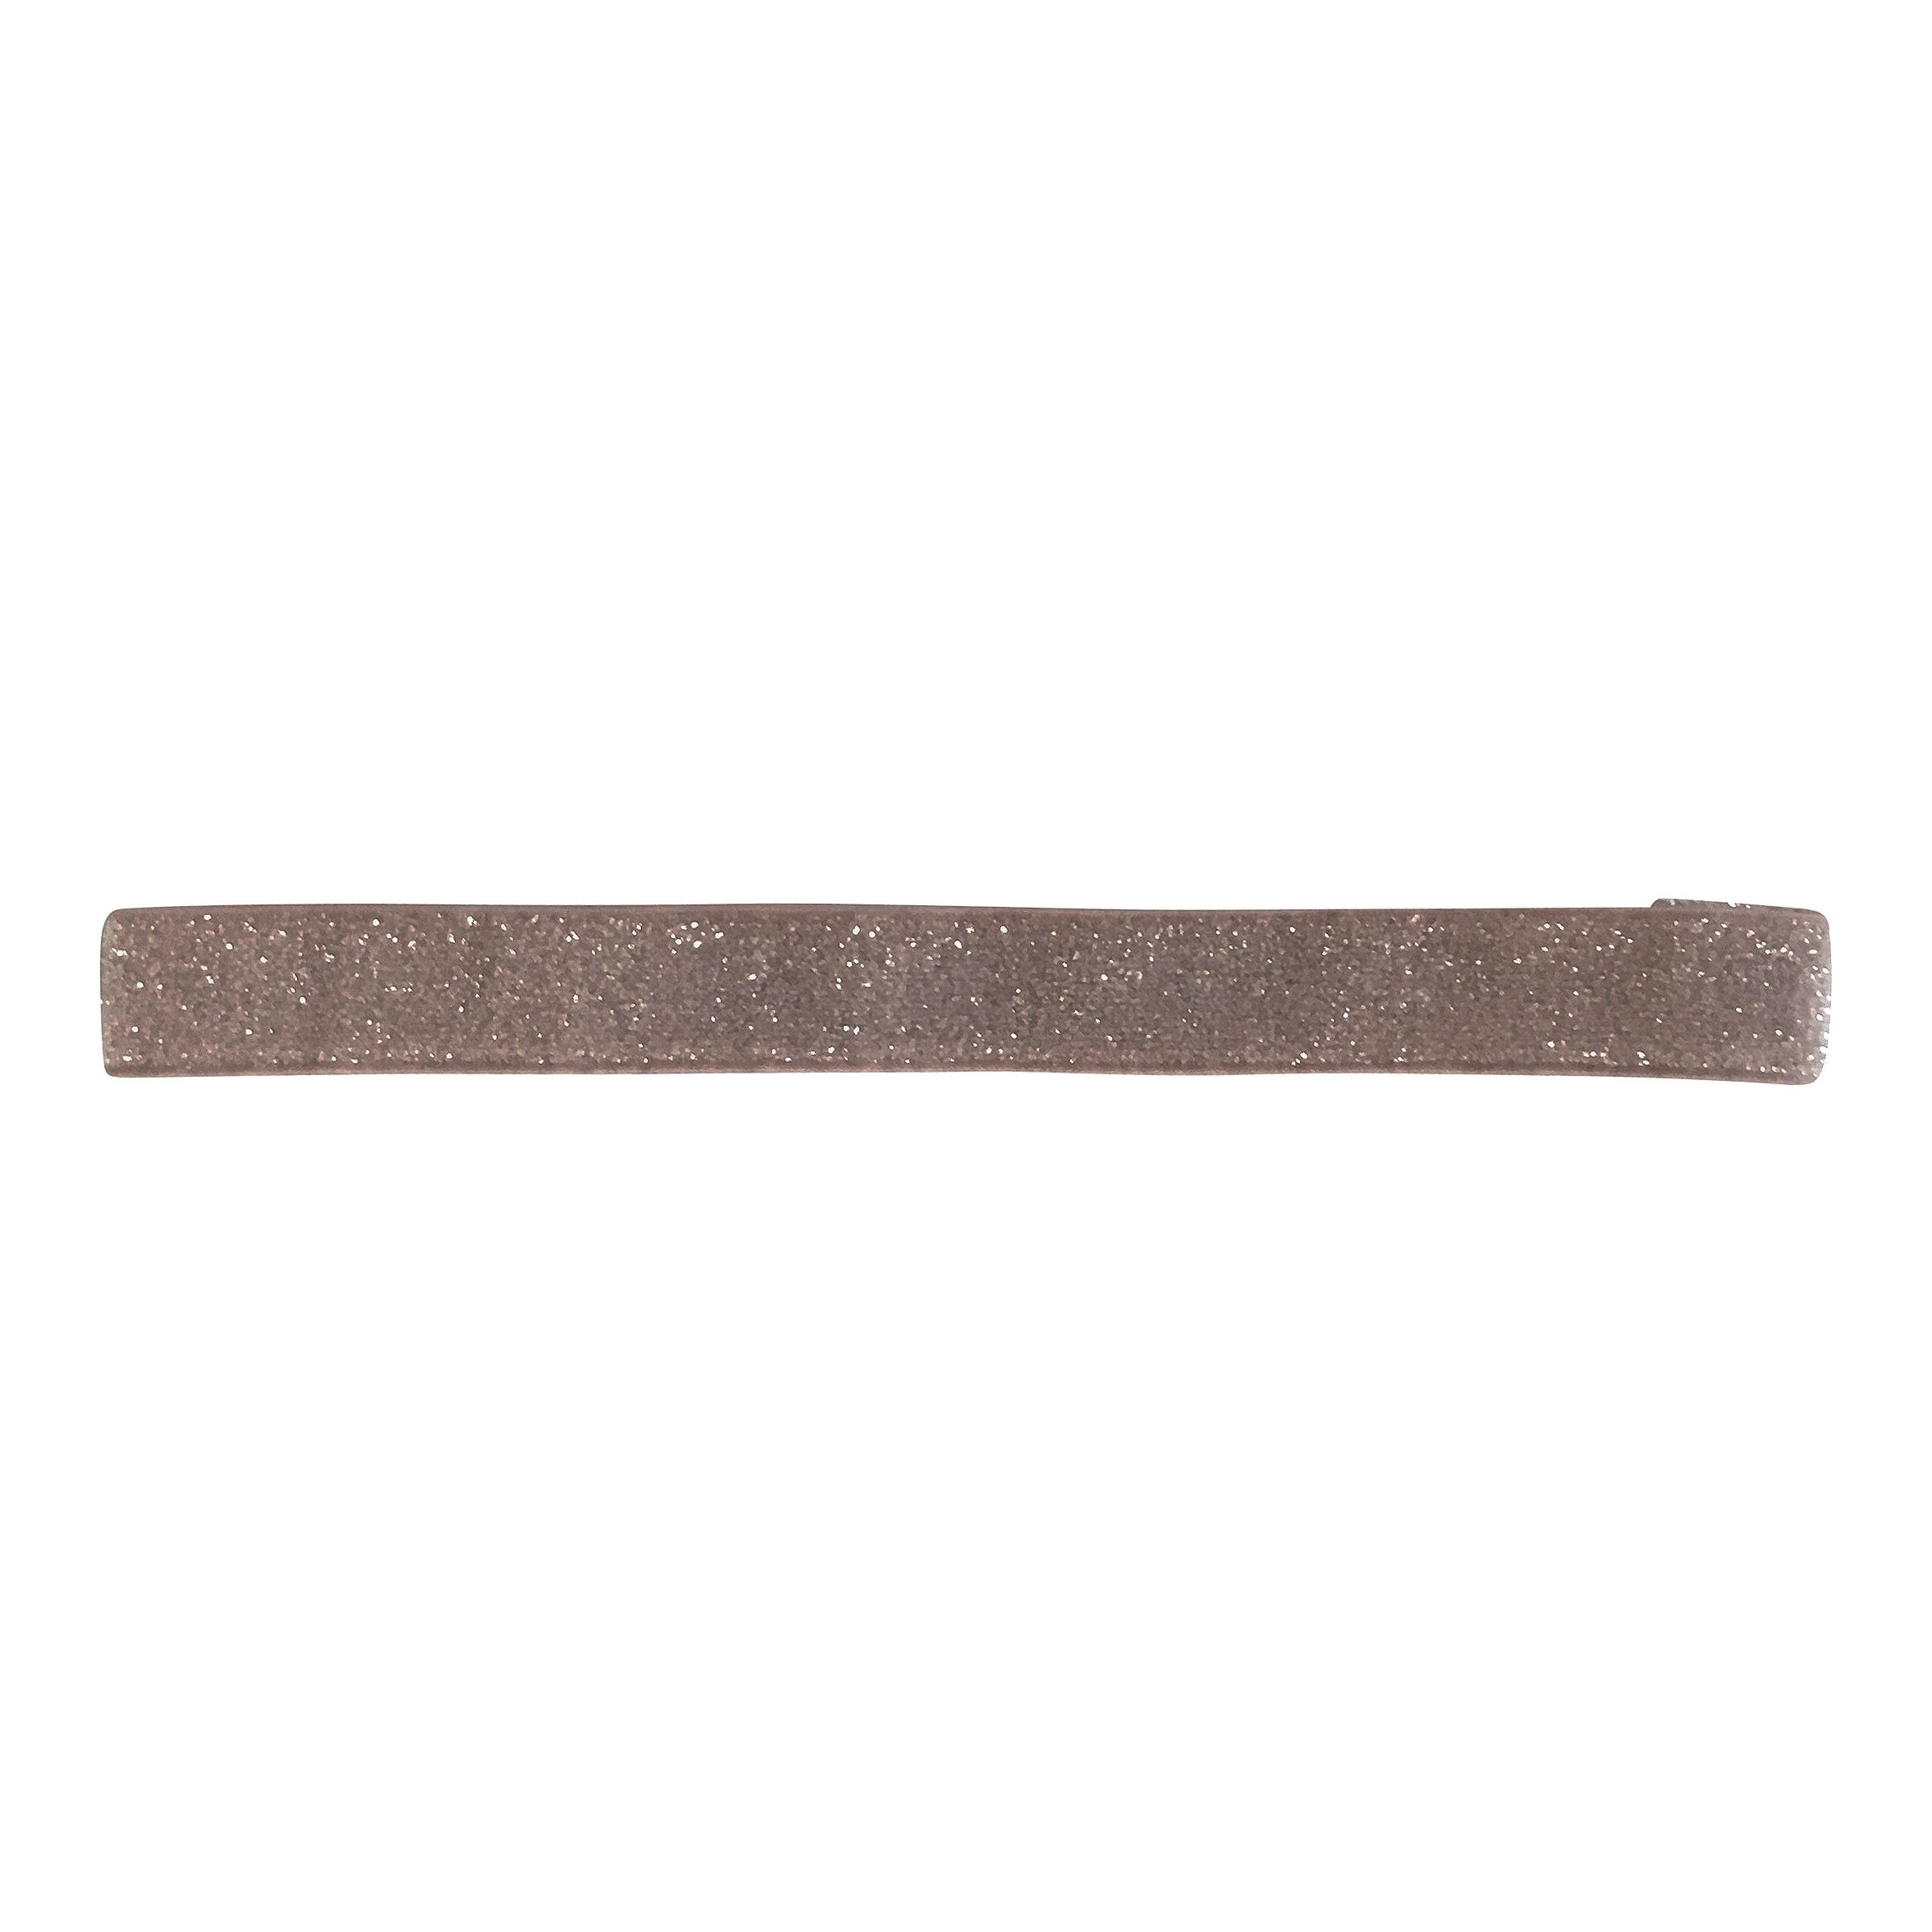 Image of Milledeux - Elastic hairband - chocolate chip colored glitter